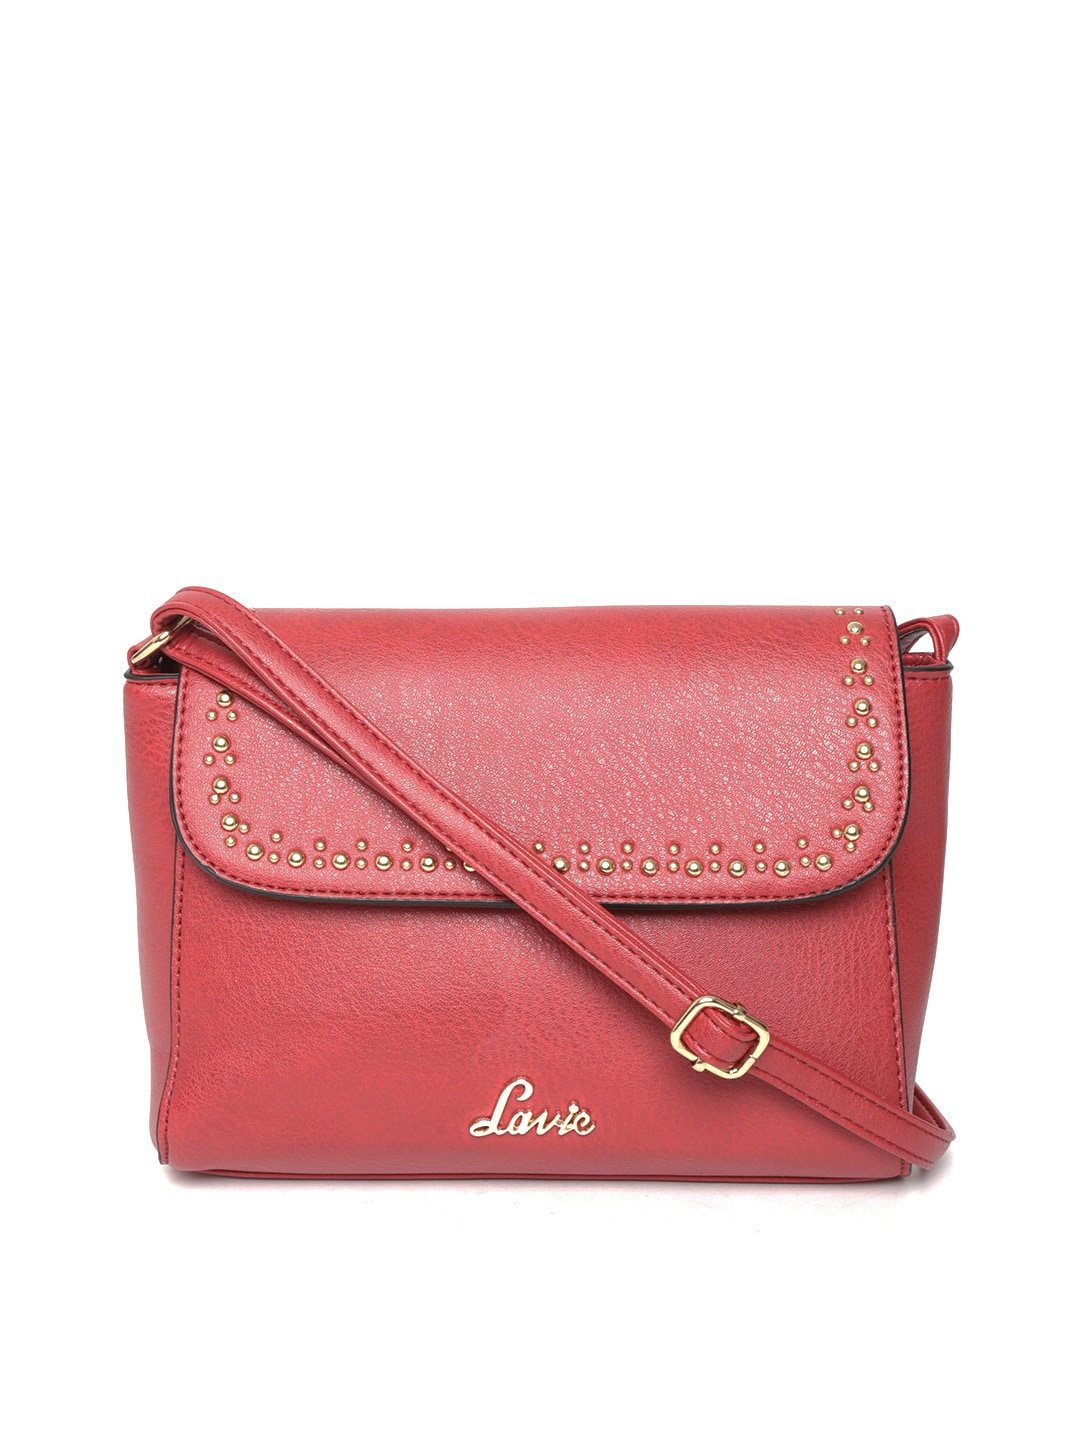 1fead798b9 Lavie Sling Bags - Buy Lavie Sling Bags online in India